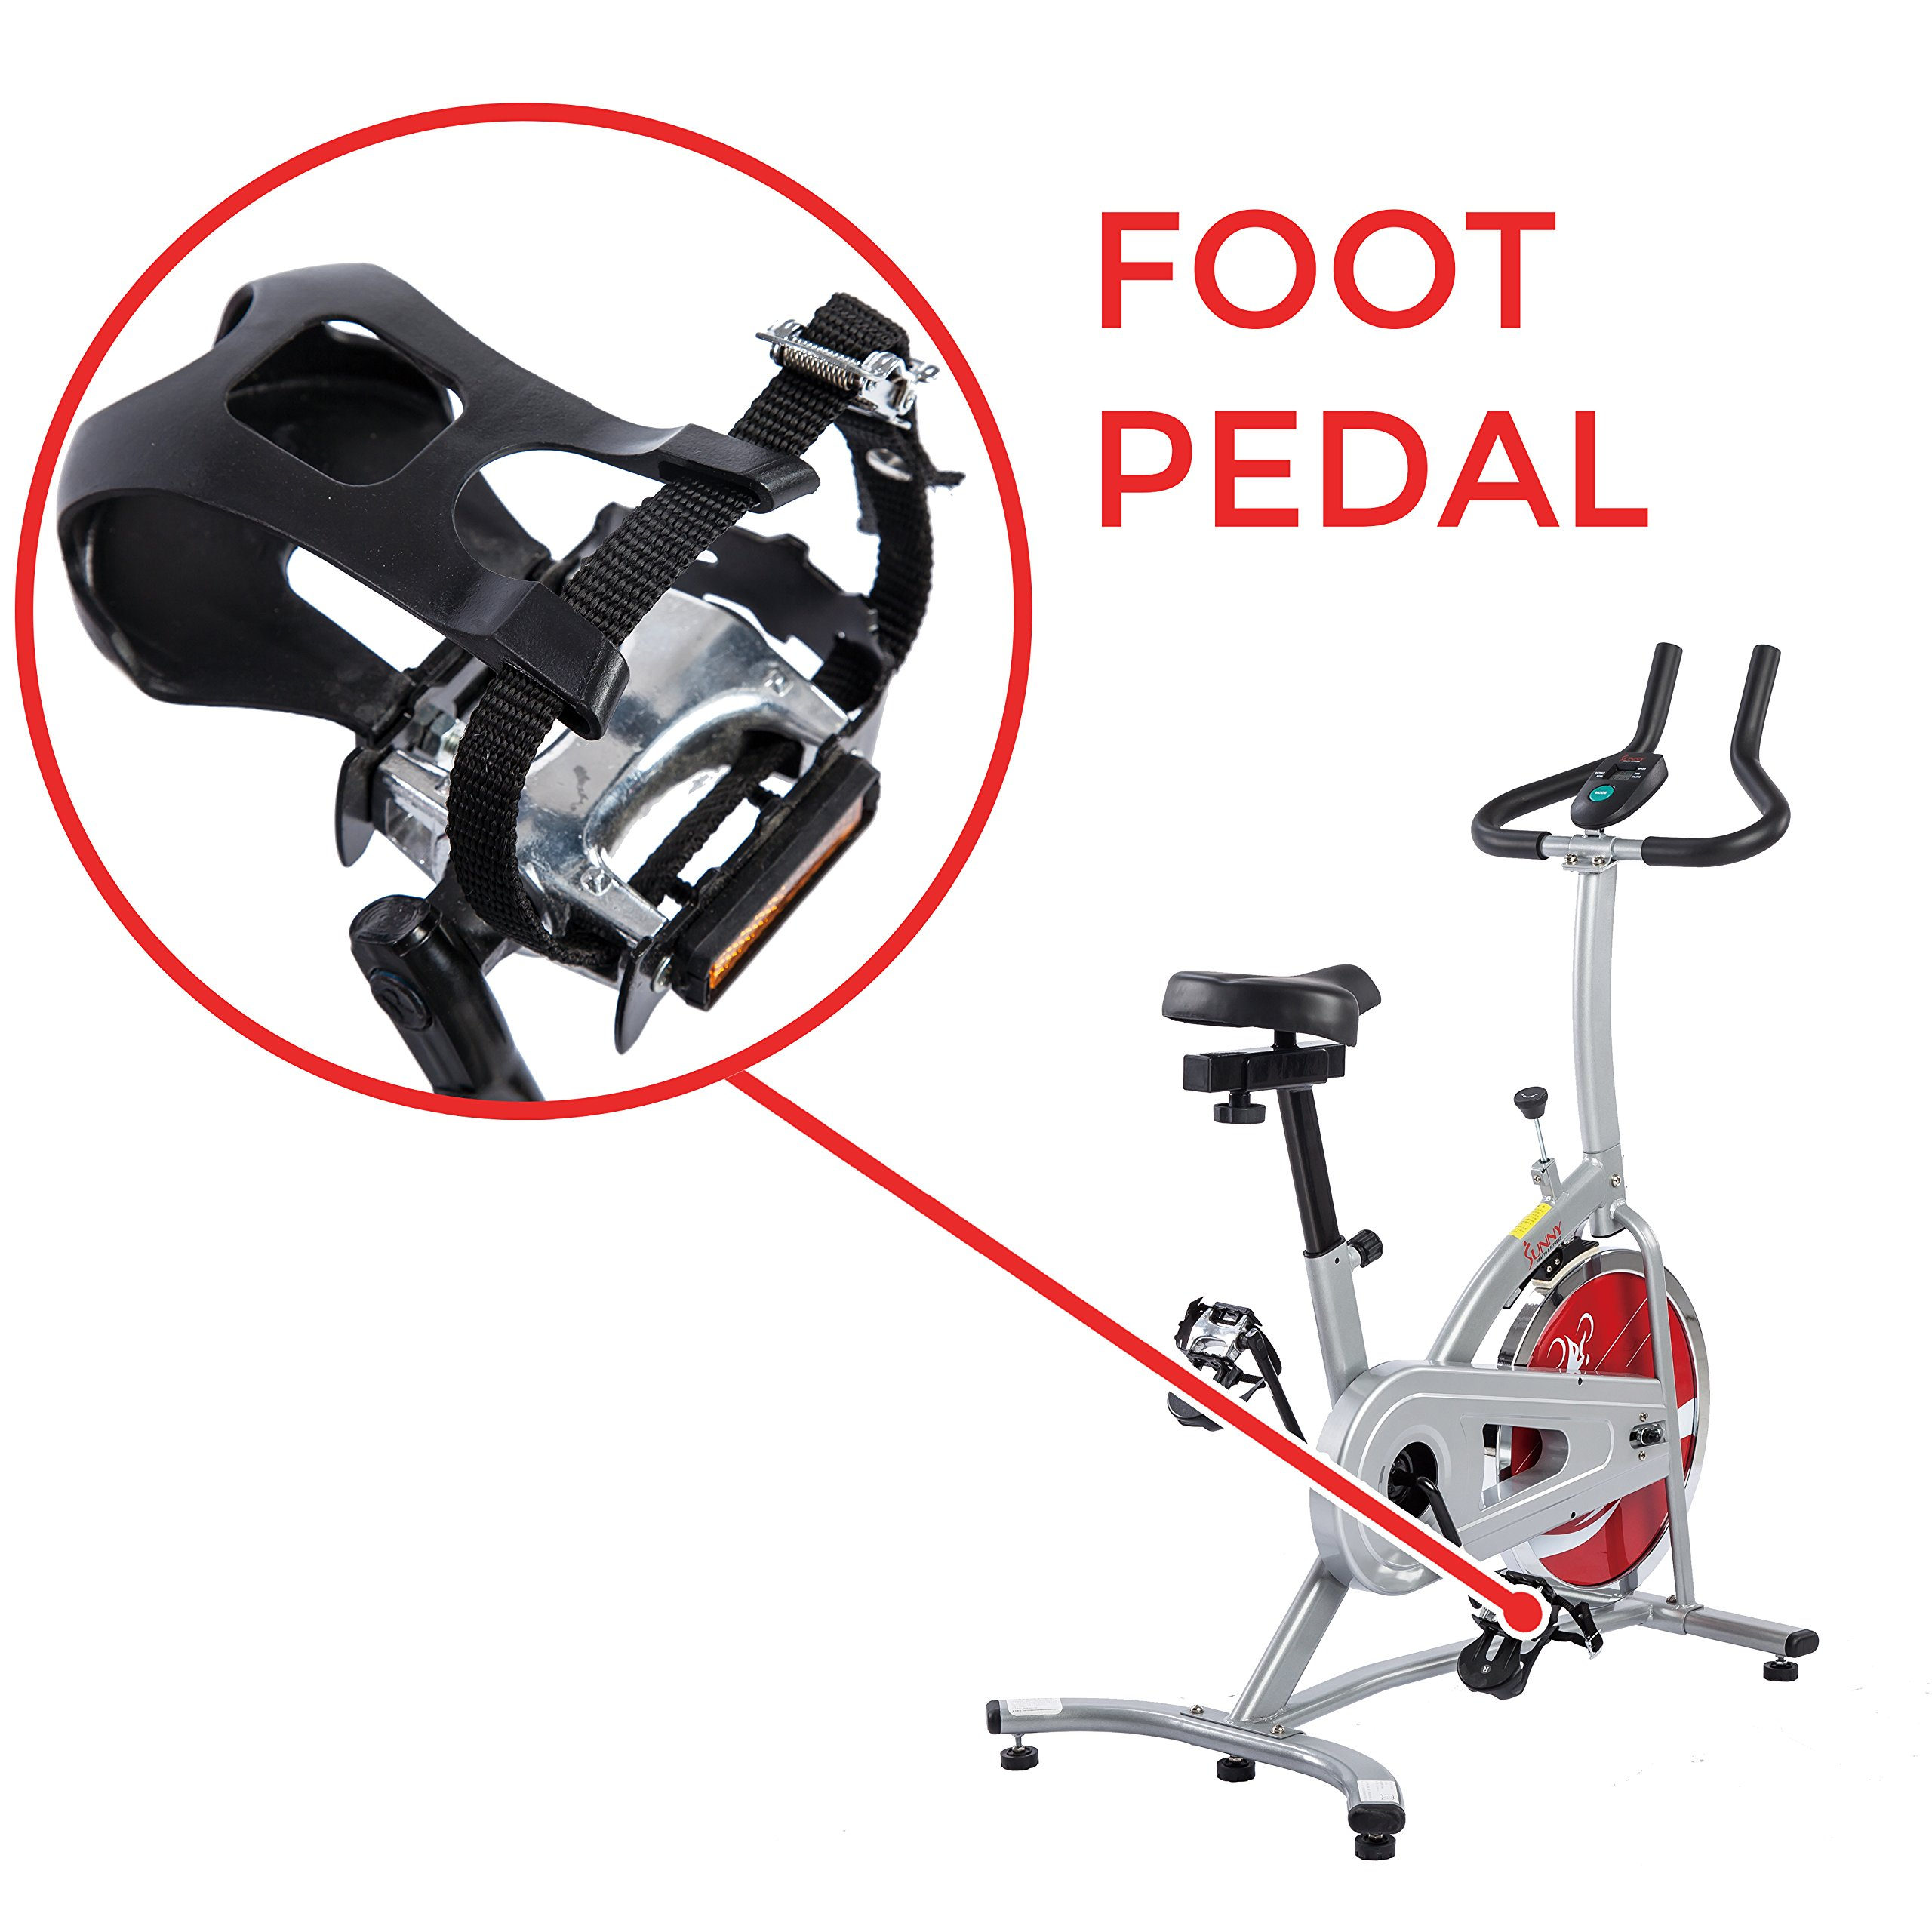 Sunny Health & Fitness Indoor Cycling Exercise Stationary Bike with Monitor and Flywheel Bike - SF-B1203 by Sunny Health & Fitness (Image #6)